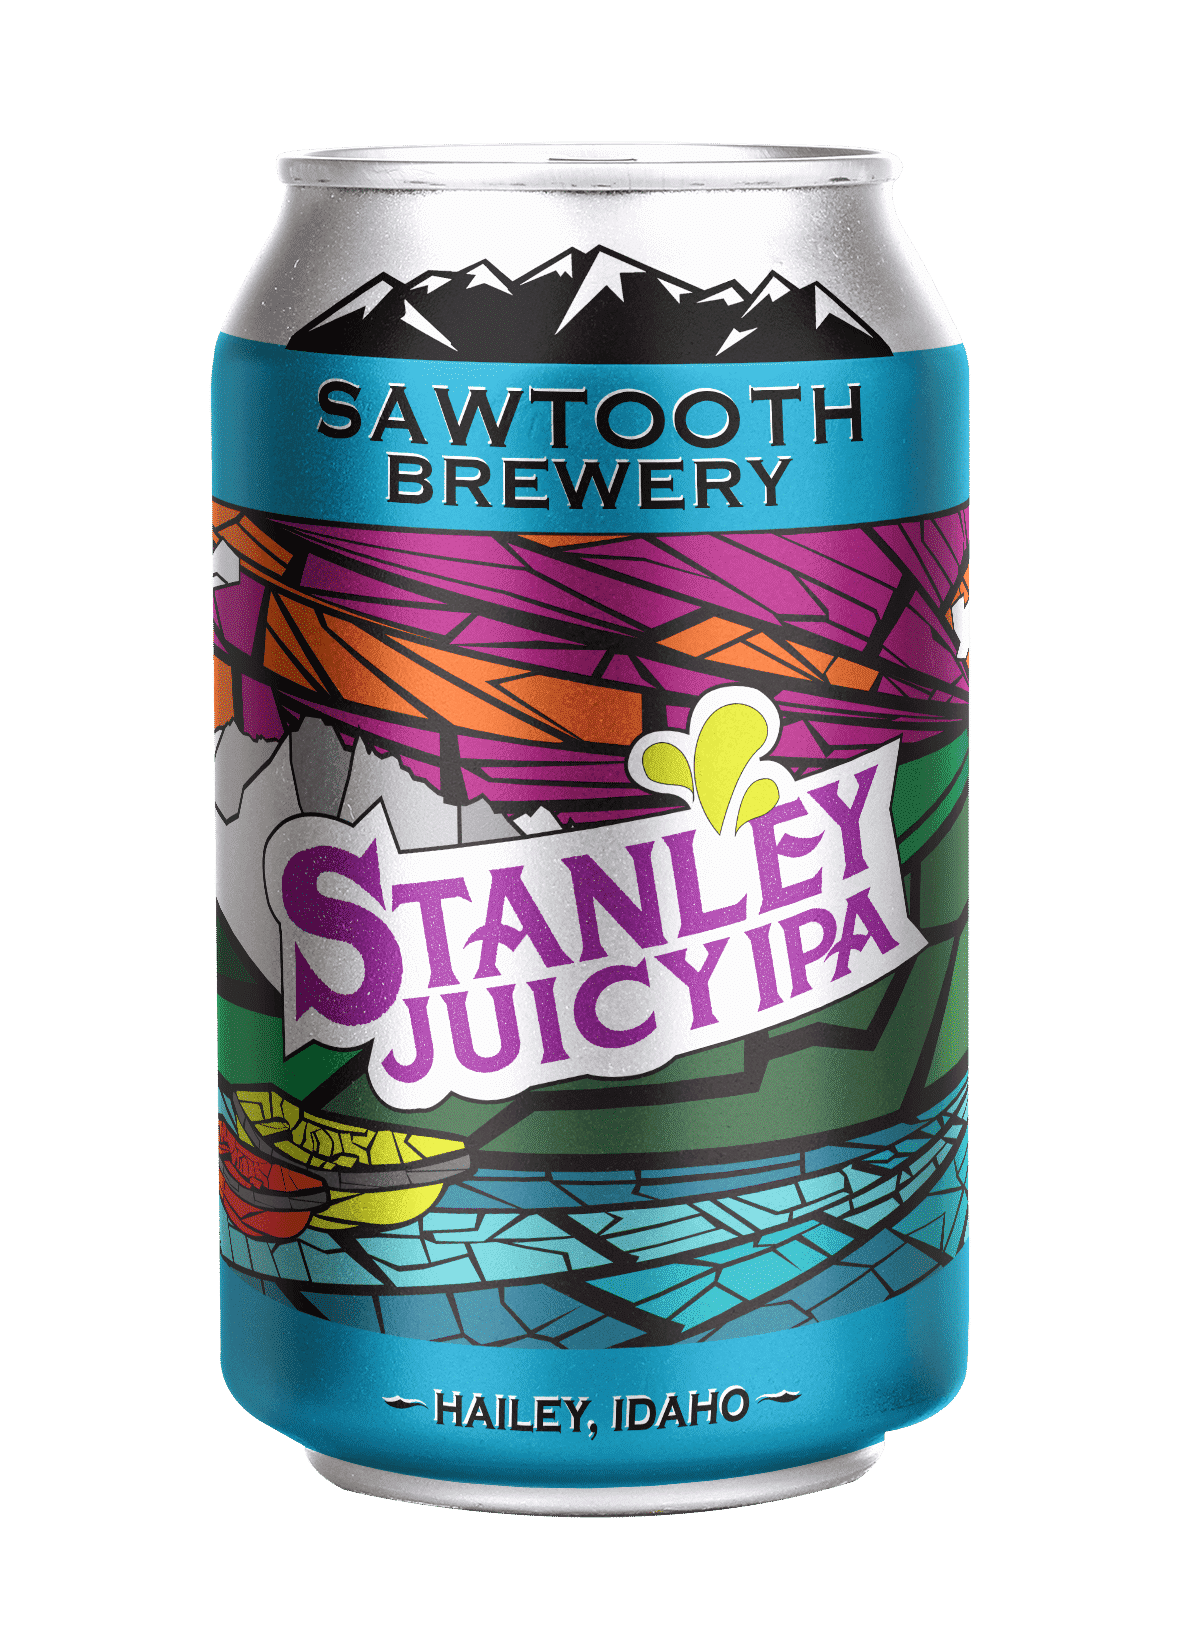 Portfolio | Beer Can Design for Sawtooth Brewery featuring Stanley Juicy IPA